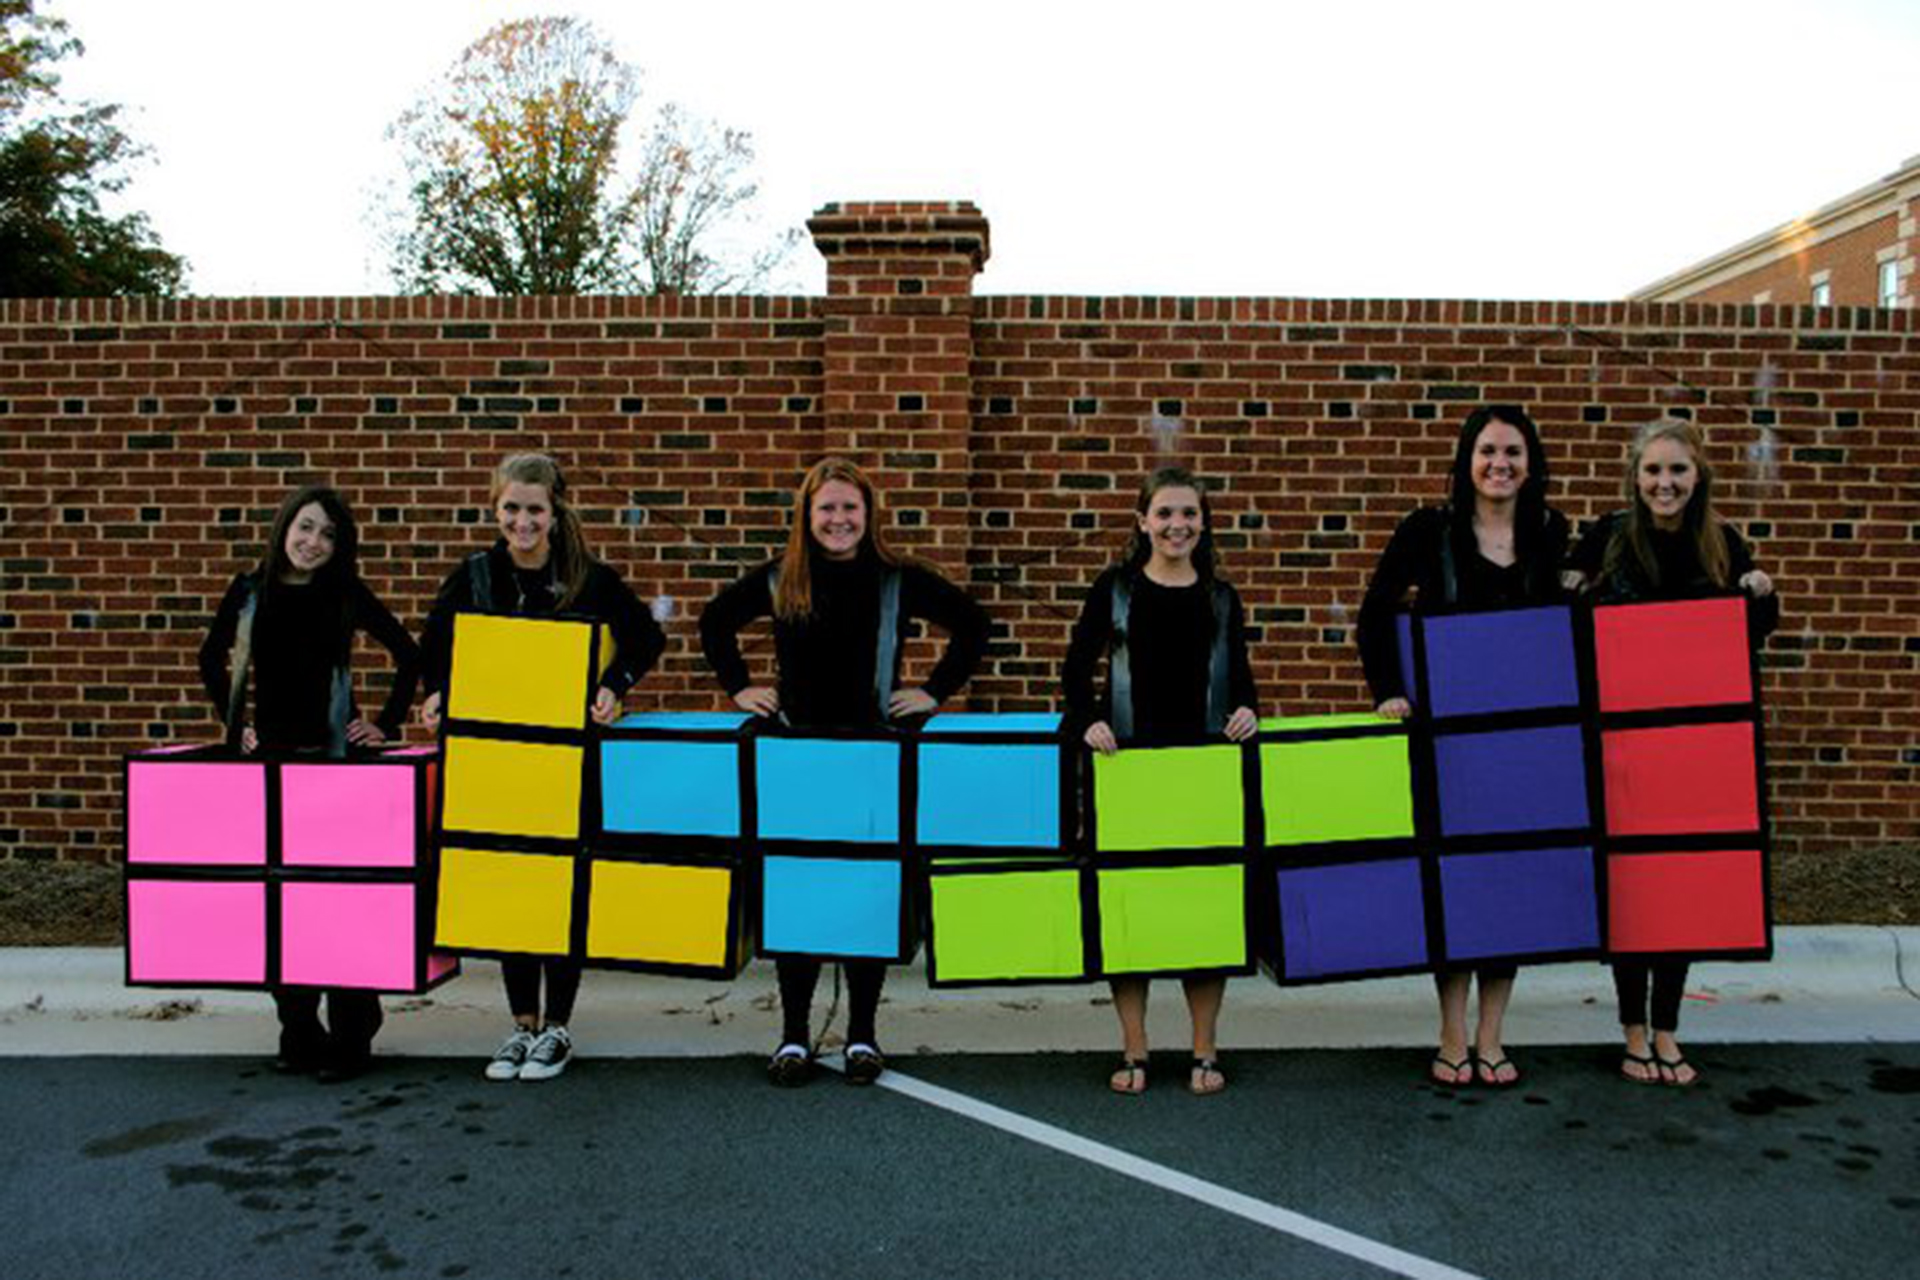 Cardboard box Halloween costume ideas tetris group costume